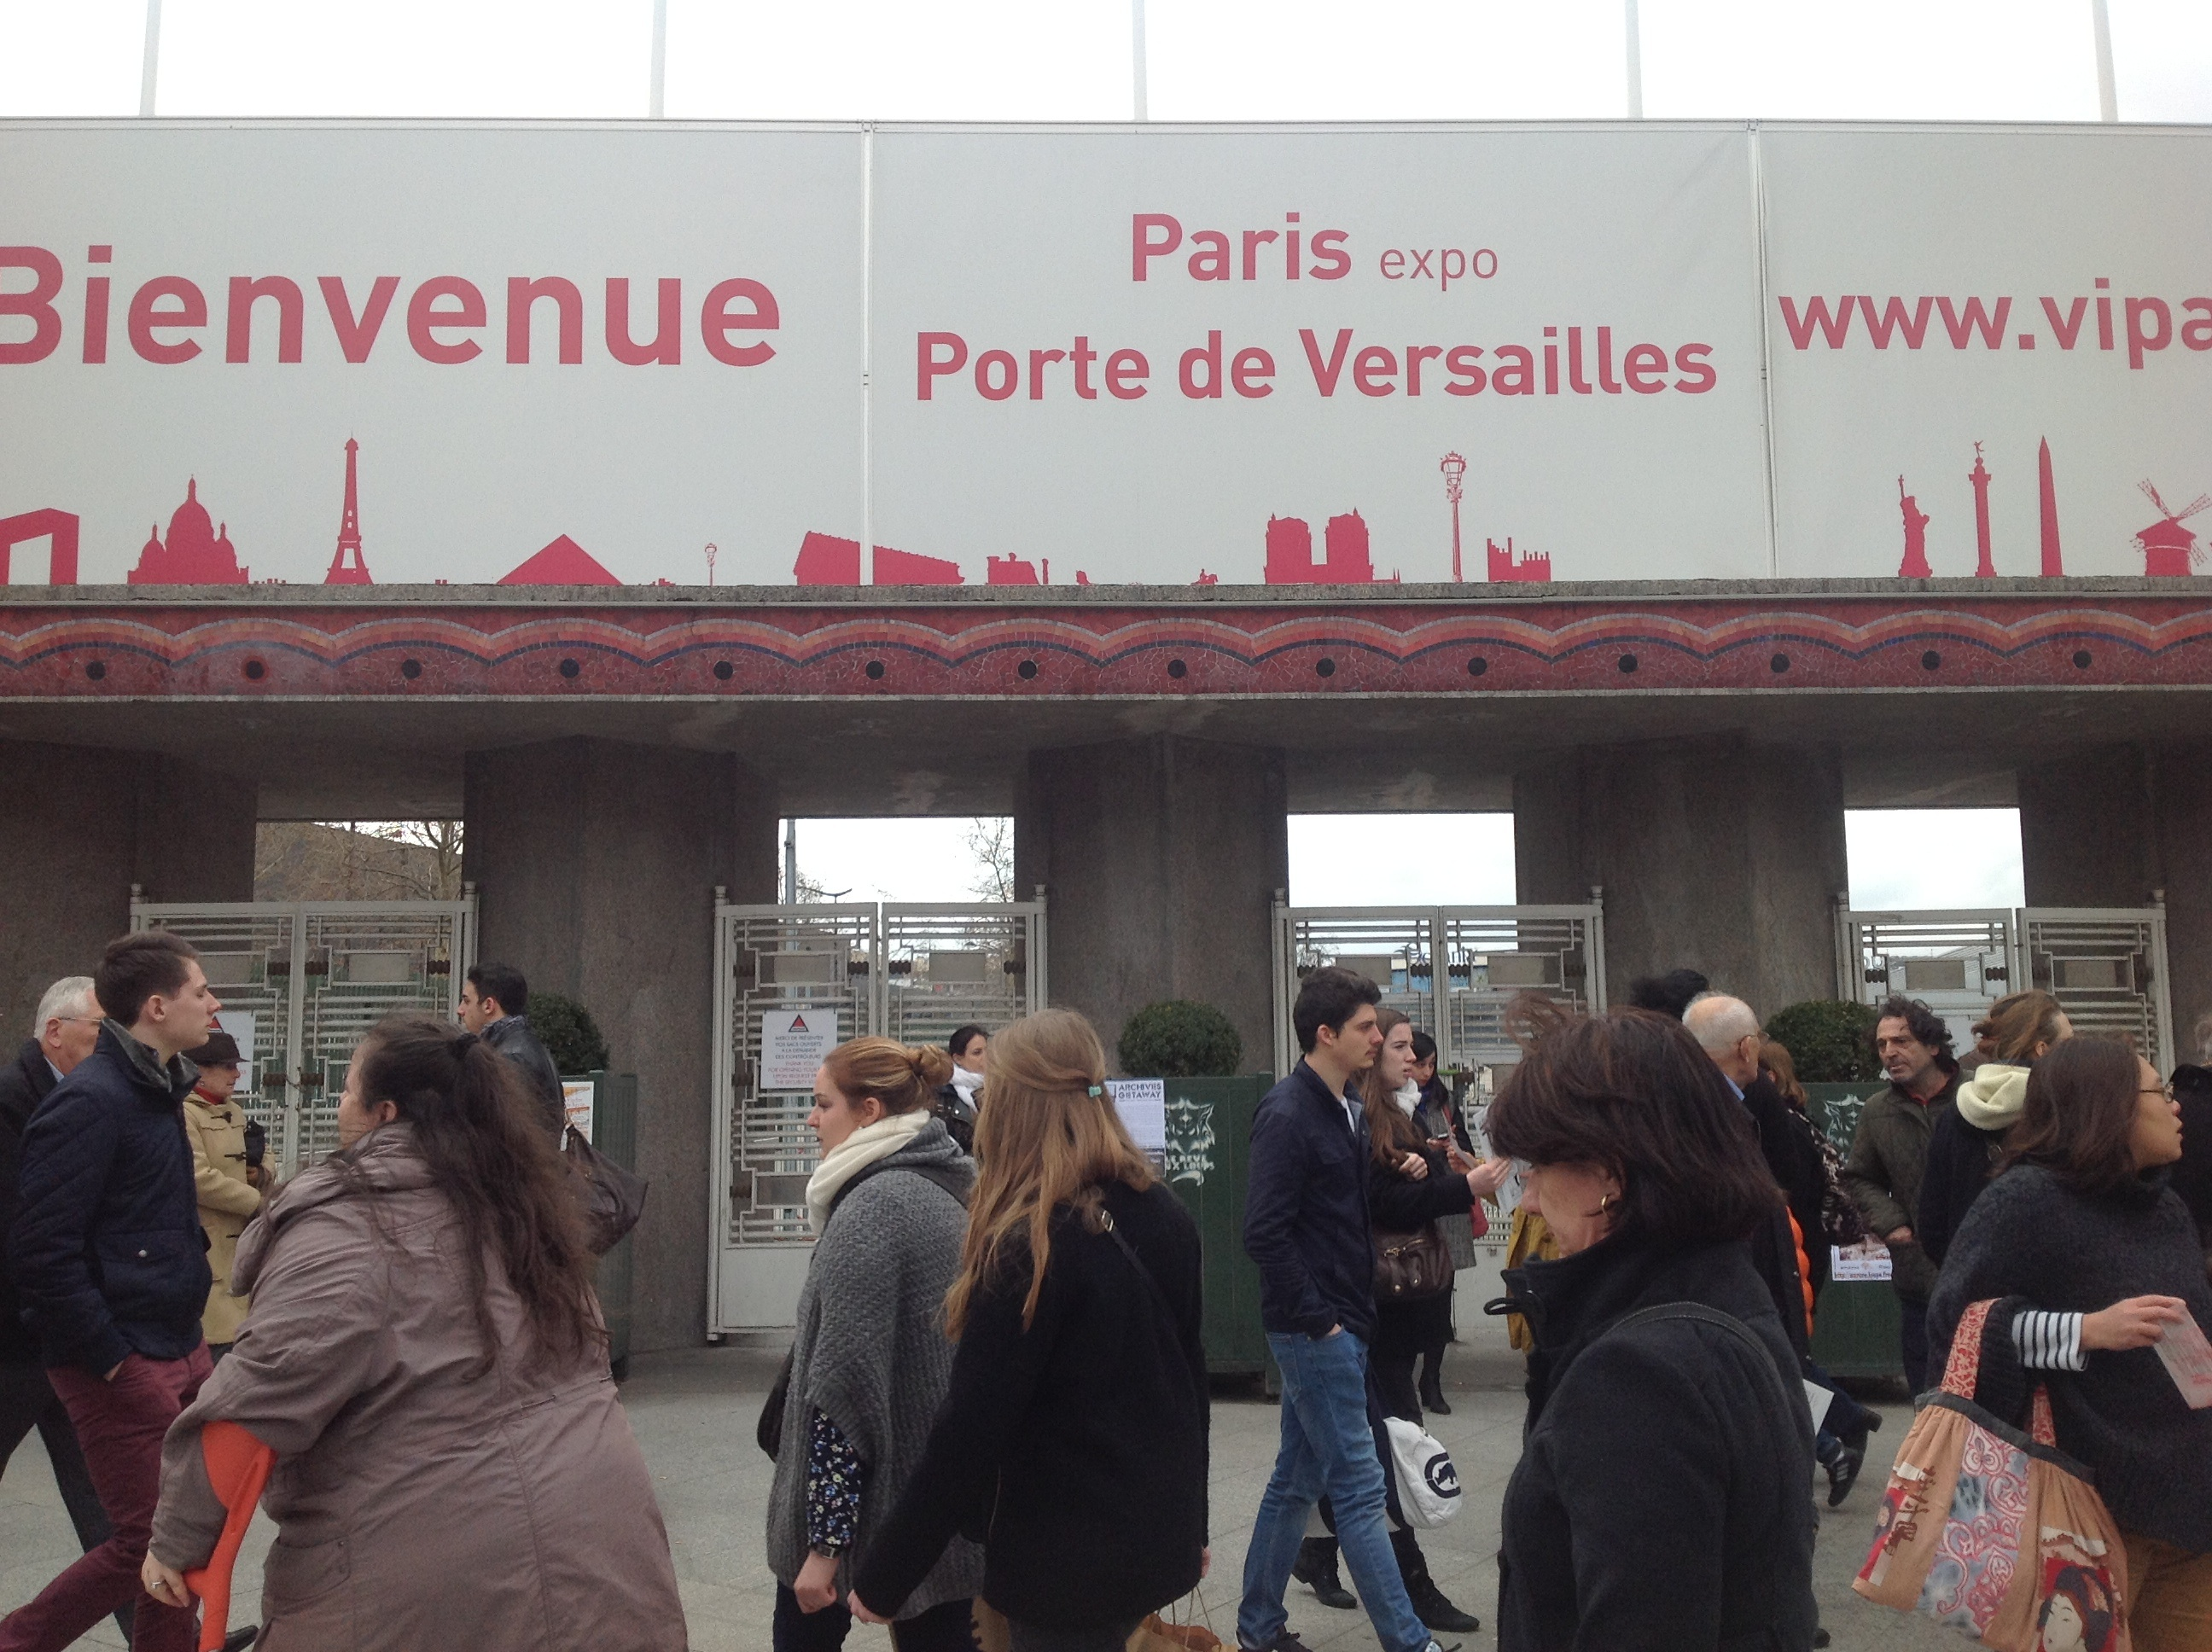 Le salon du livre 2015 paris portes de versailles for Porte de versailles salon des vignerons independants 2015